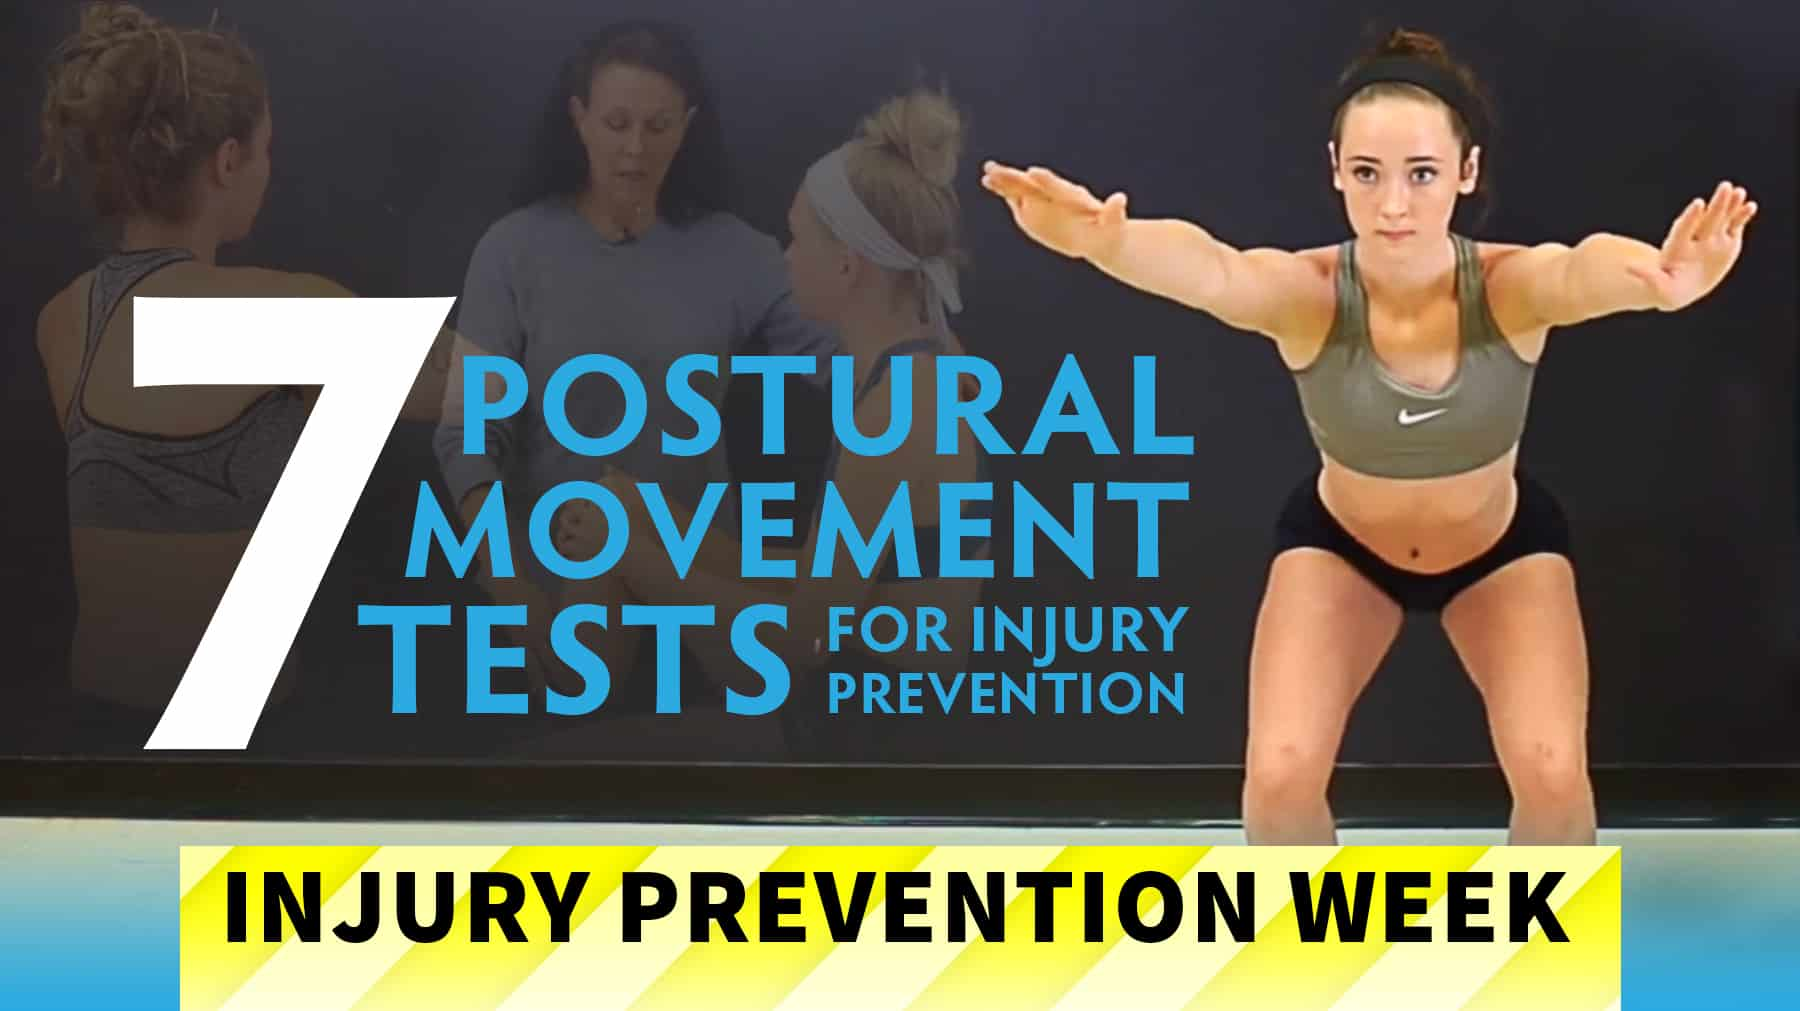 7 Postural Movement Tests For Injury Prevention